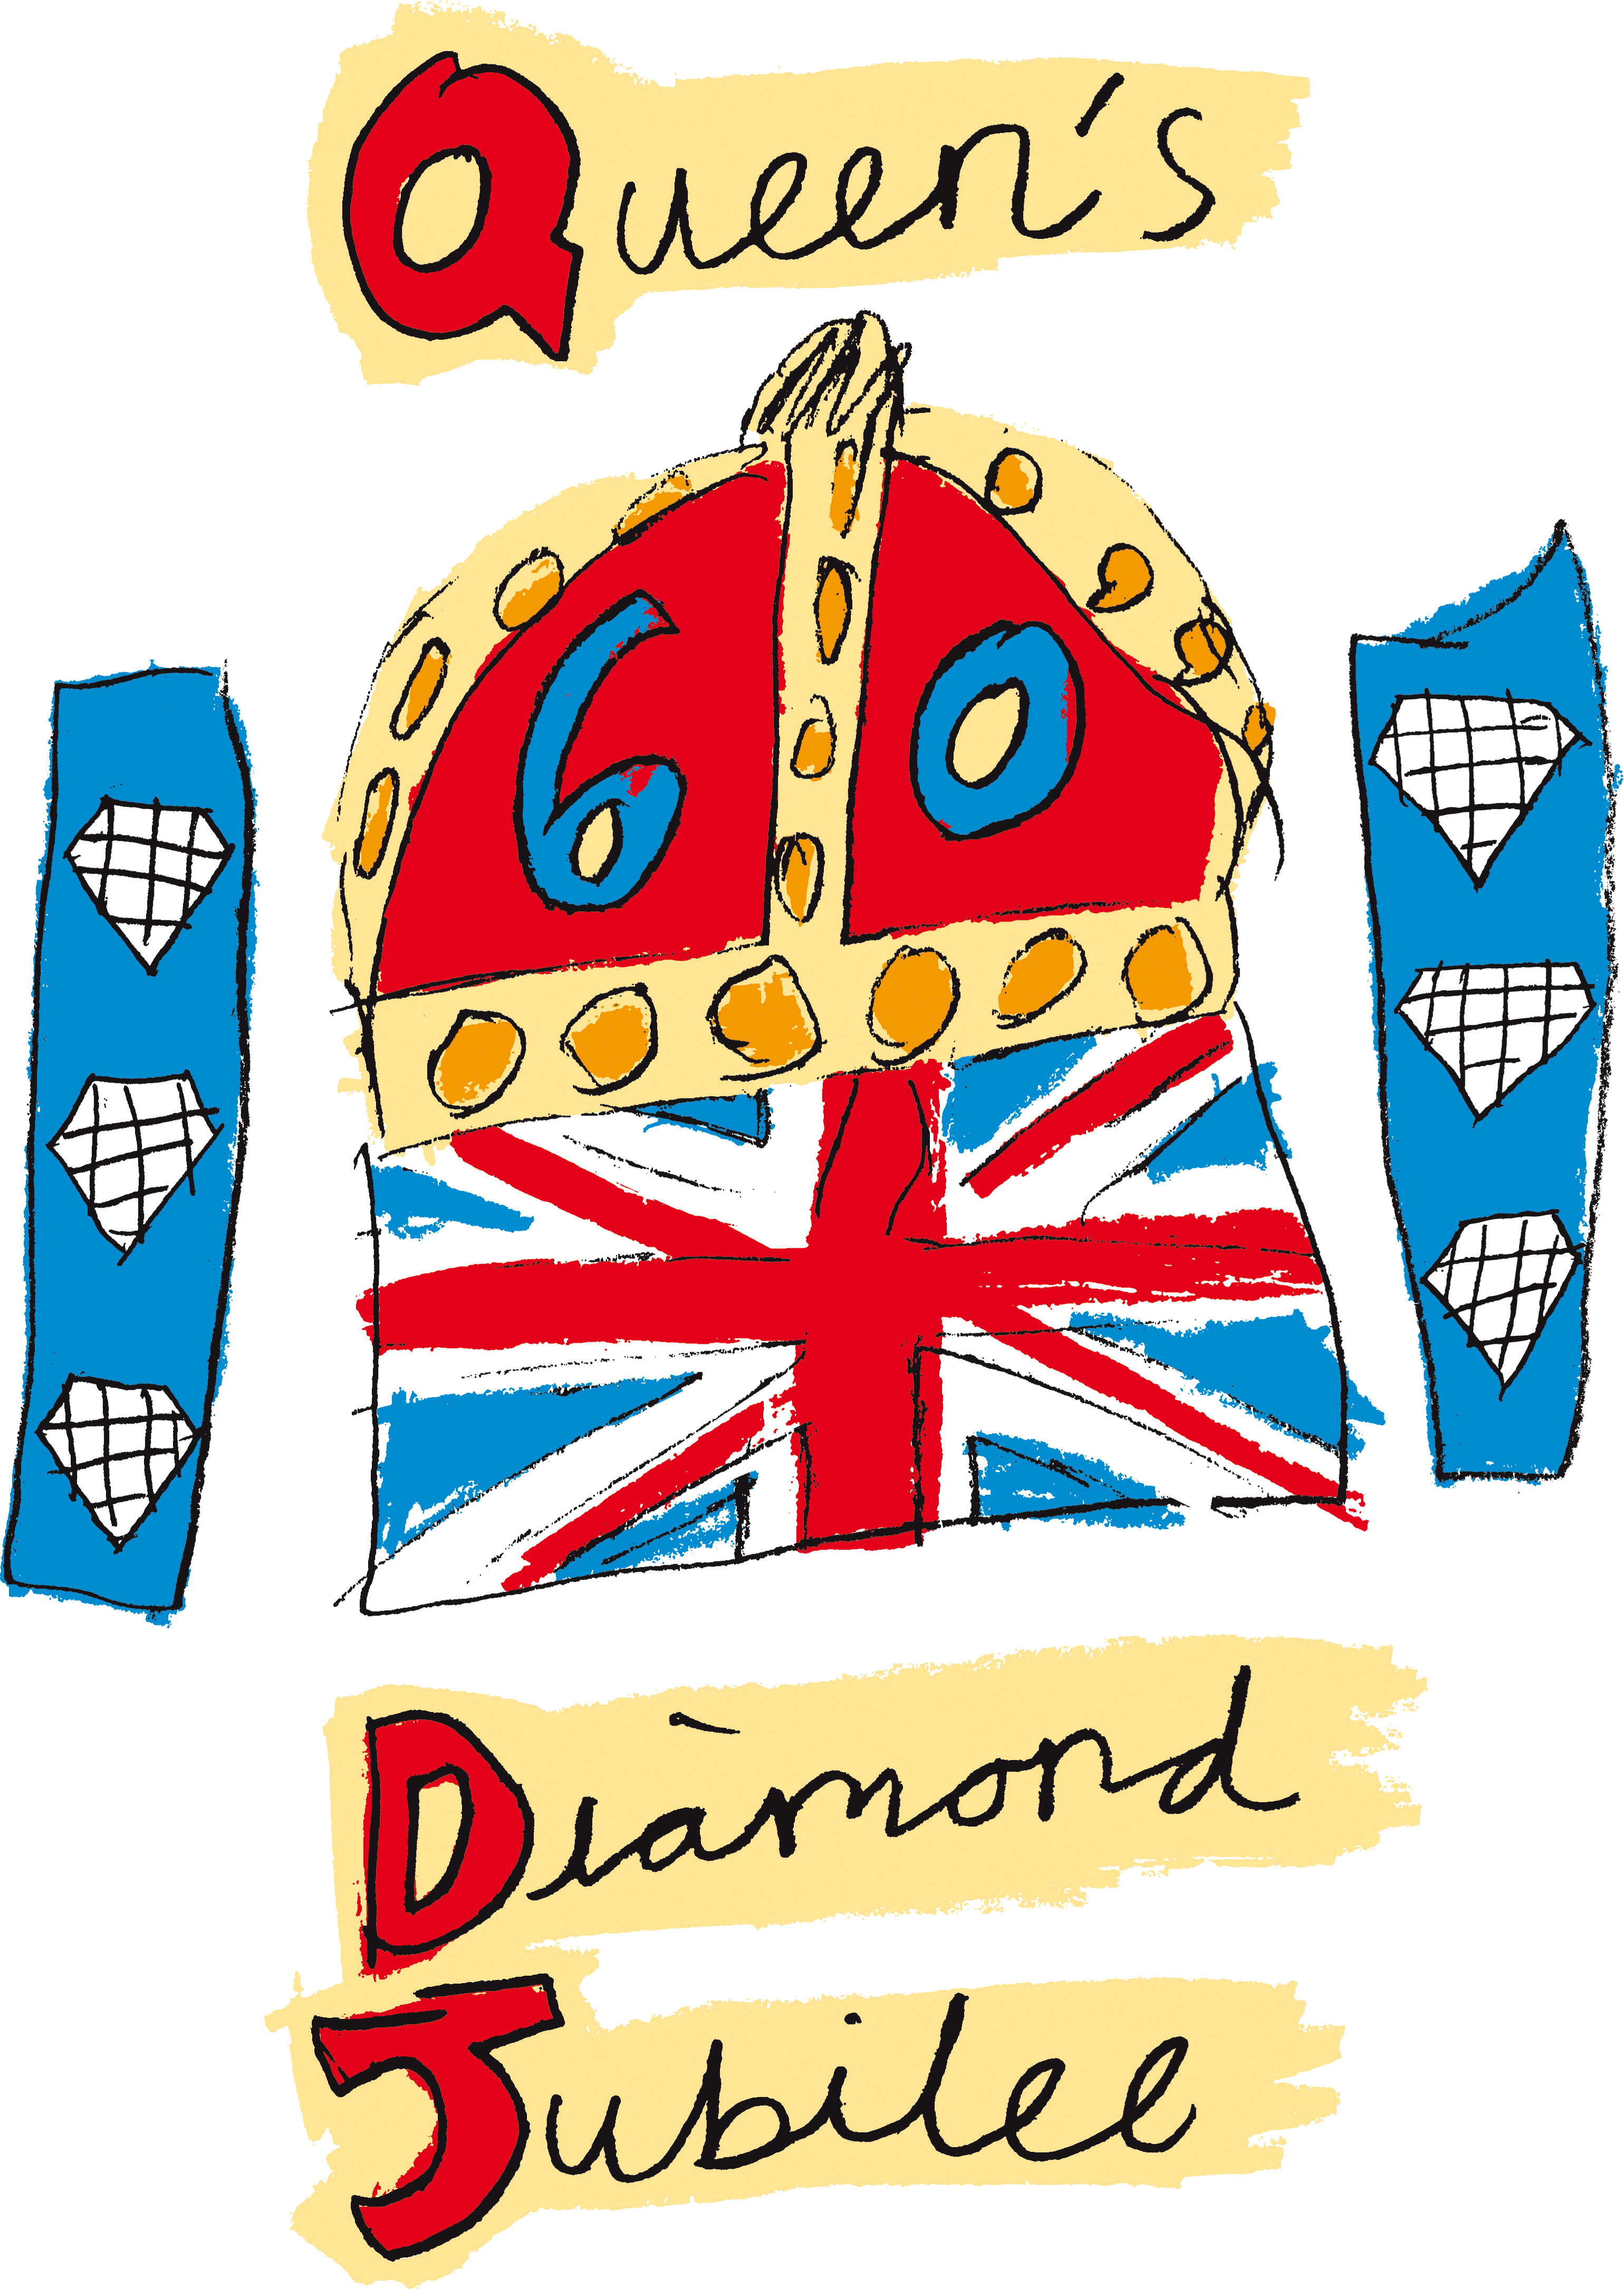 1000+ images about 2012 DIAMOND JUBILEE on Pinterest.